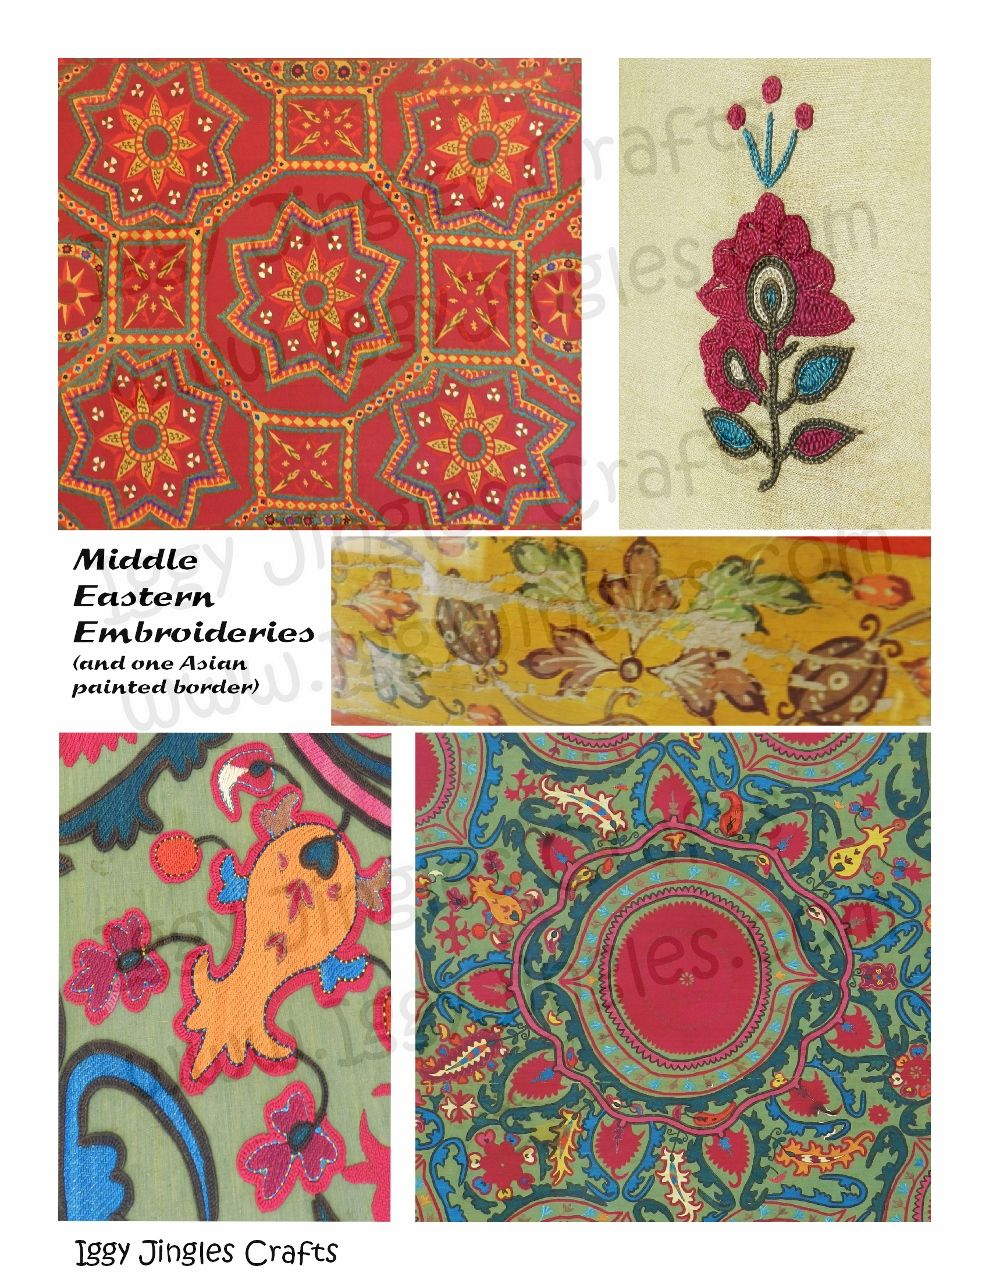 Middle Eastern Embroideries Collage Sheet